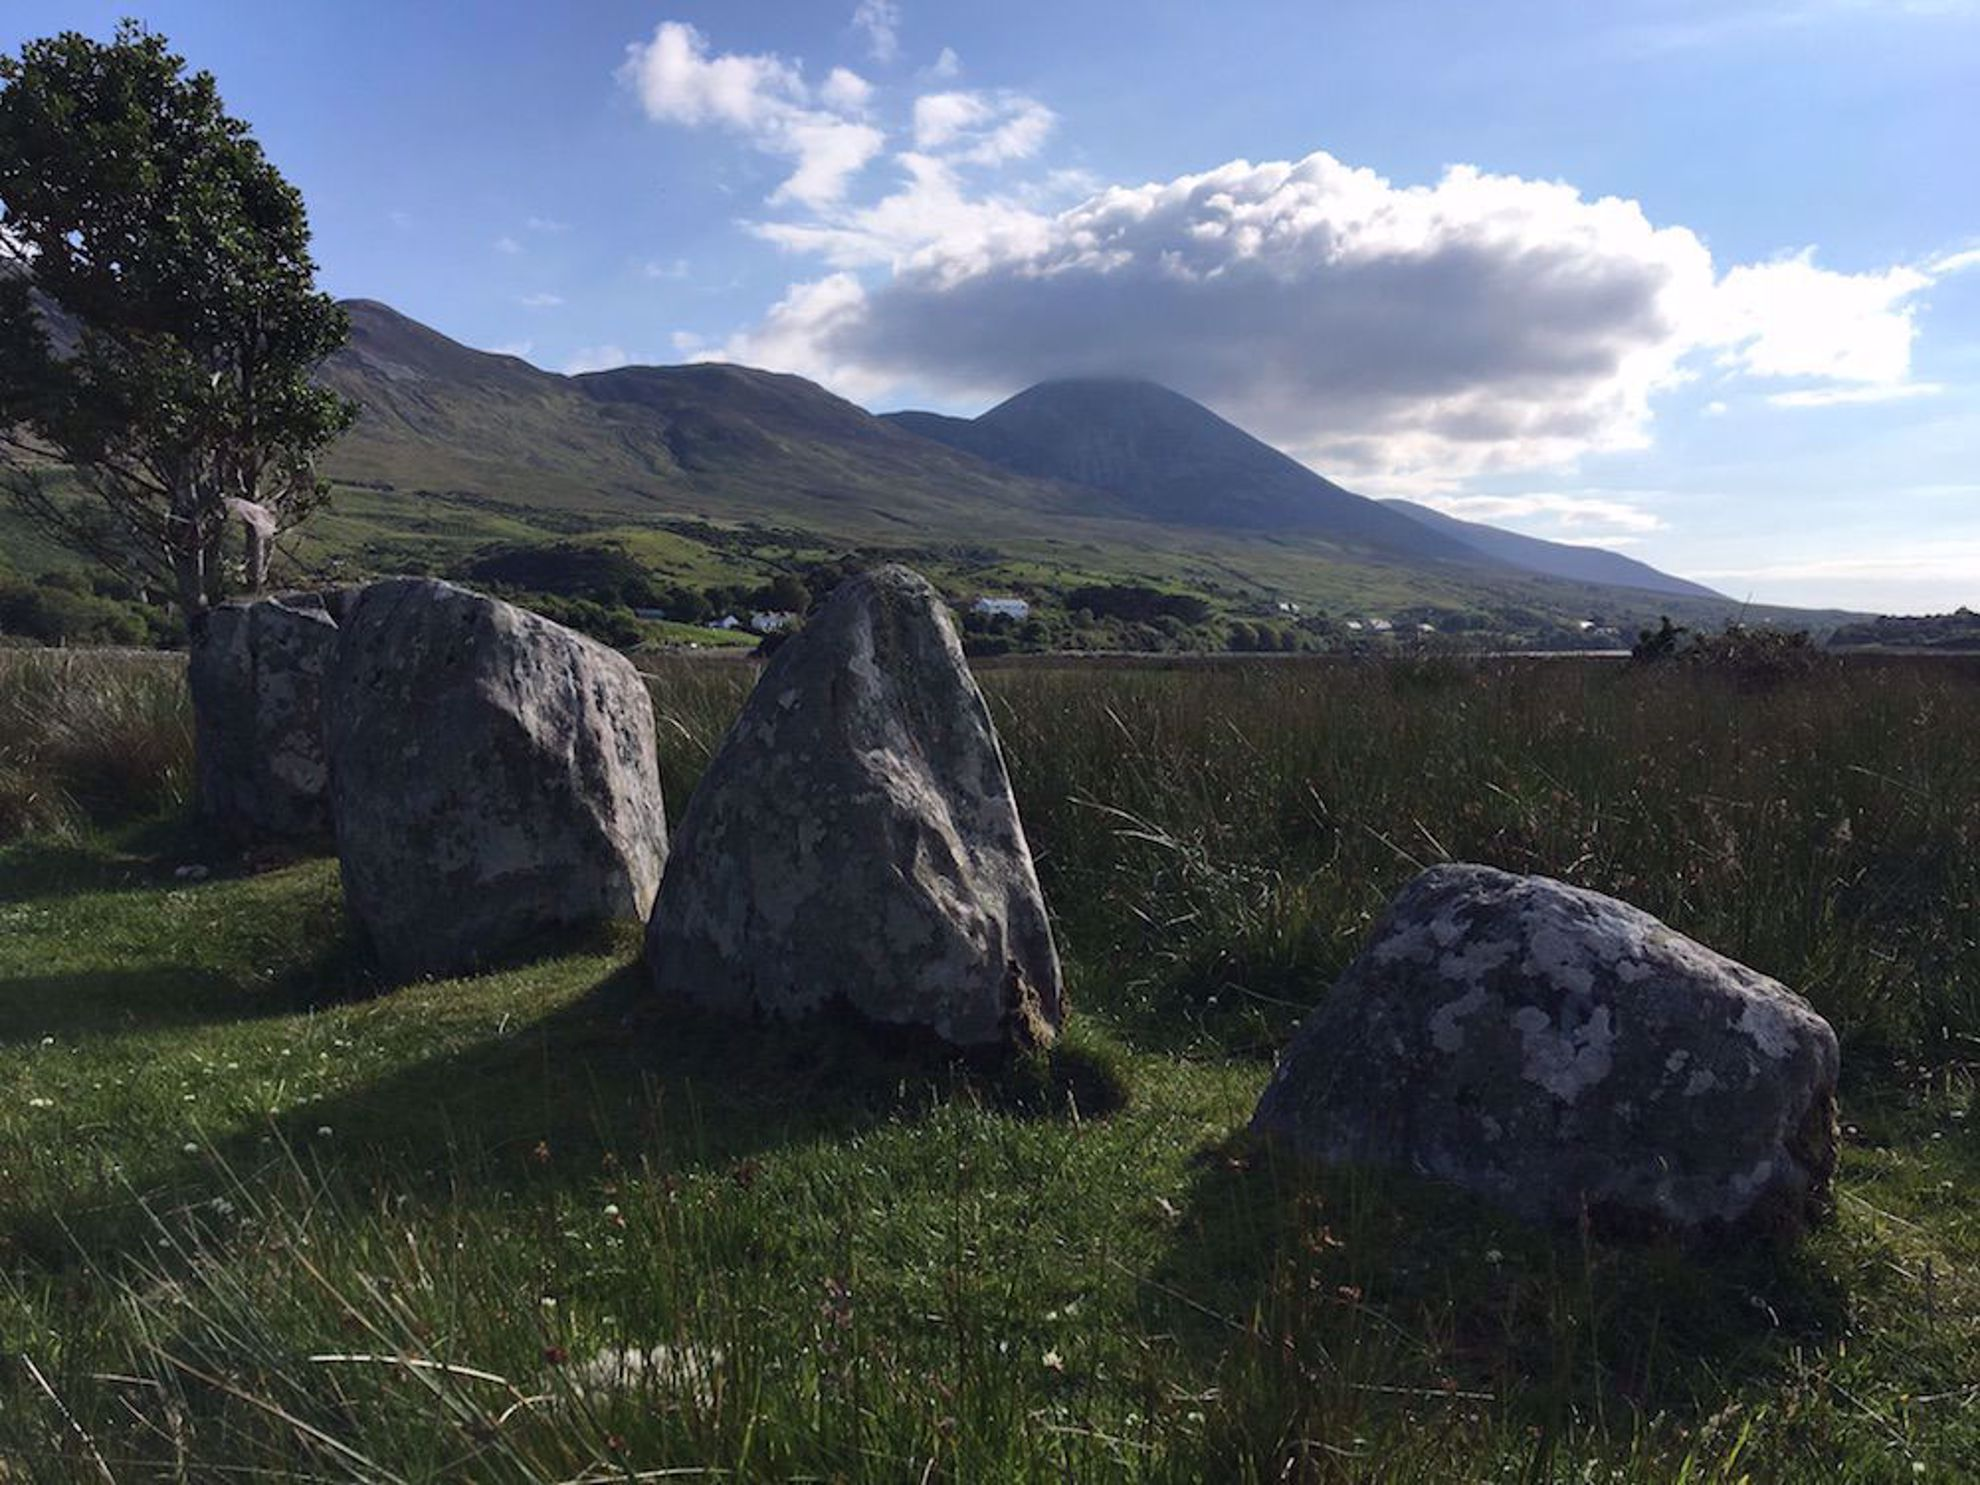 Croagh Patrick with rocks